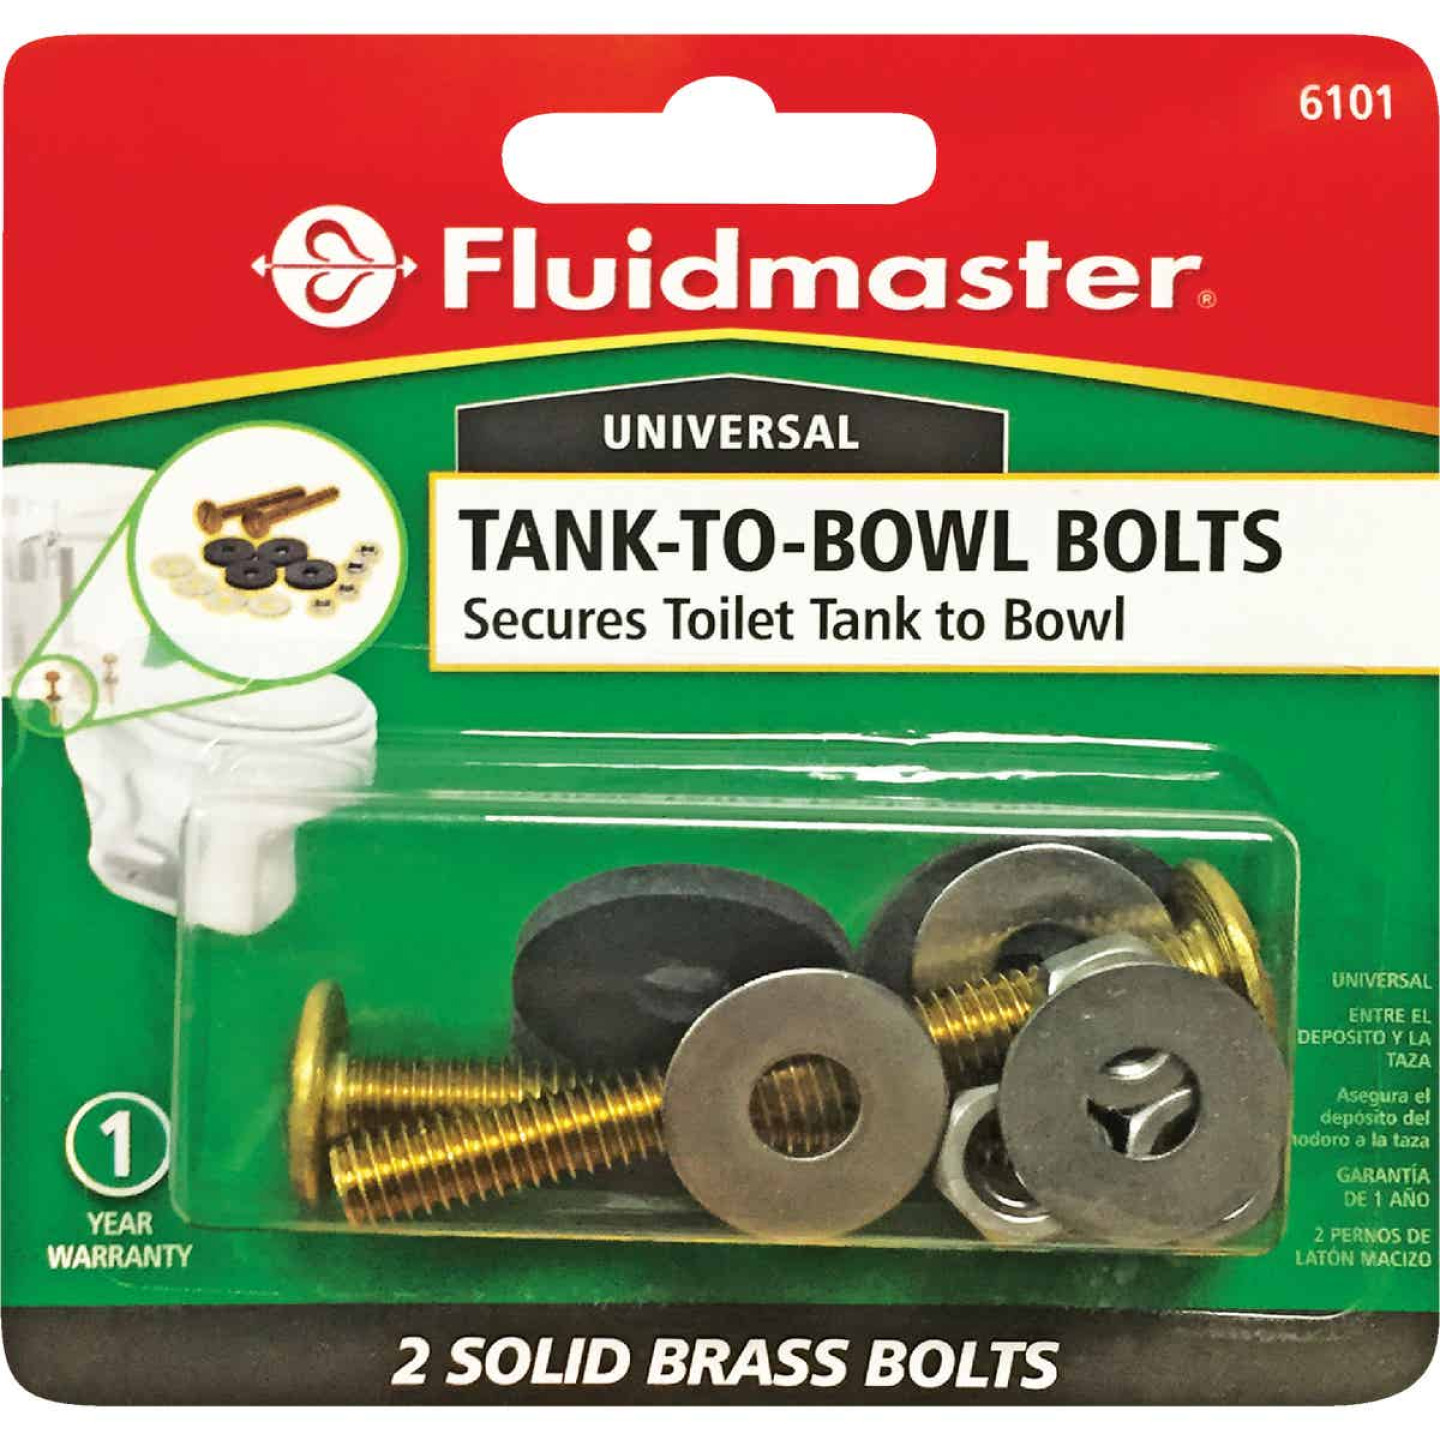 Fluidmaster Tank-to-Bowl Tank Bolts (2-Pack) Image 2